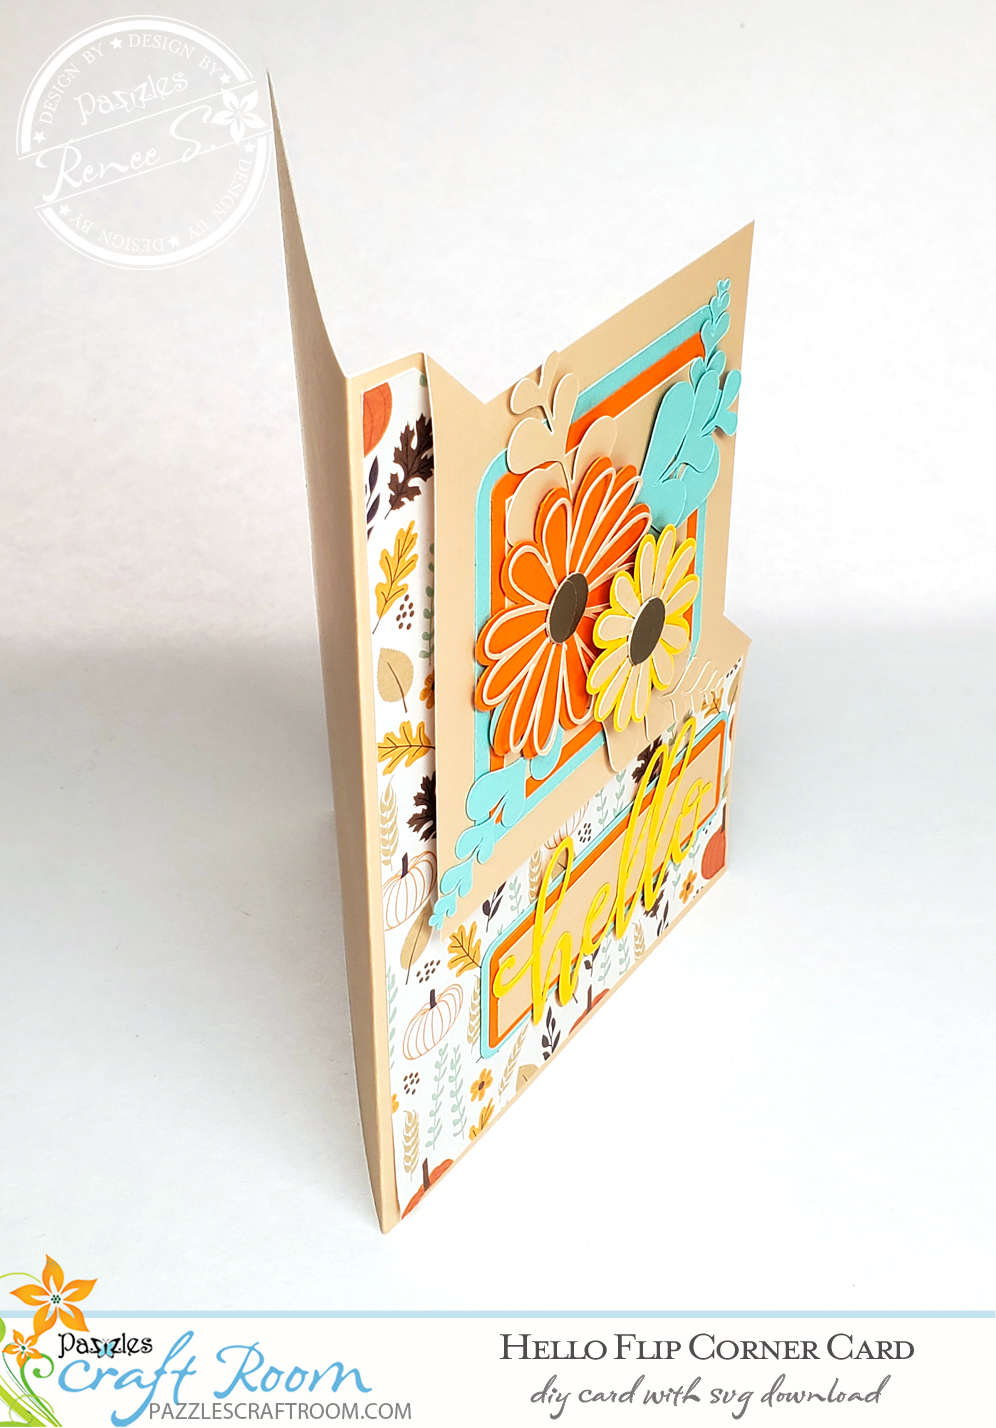 Pazzles DIY Hello Flip Corner Card with instant SVG download. Compatible with all major electronic cutters including Pazzles Inspiration, Cricut, and Silhouette Cameo. Design by Renee Smart.